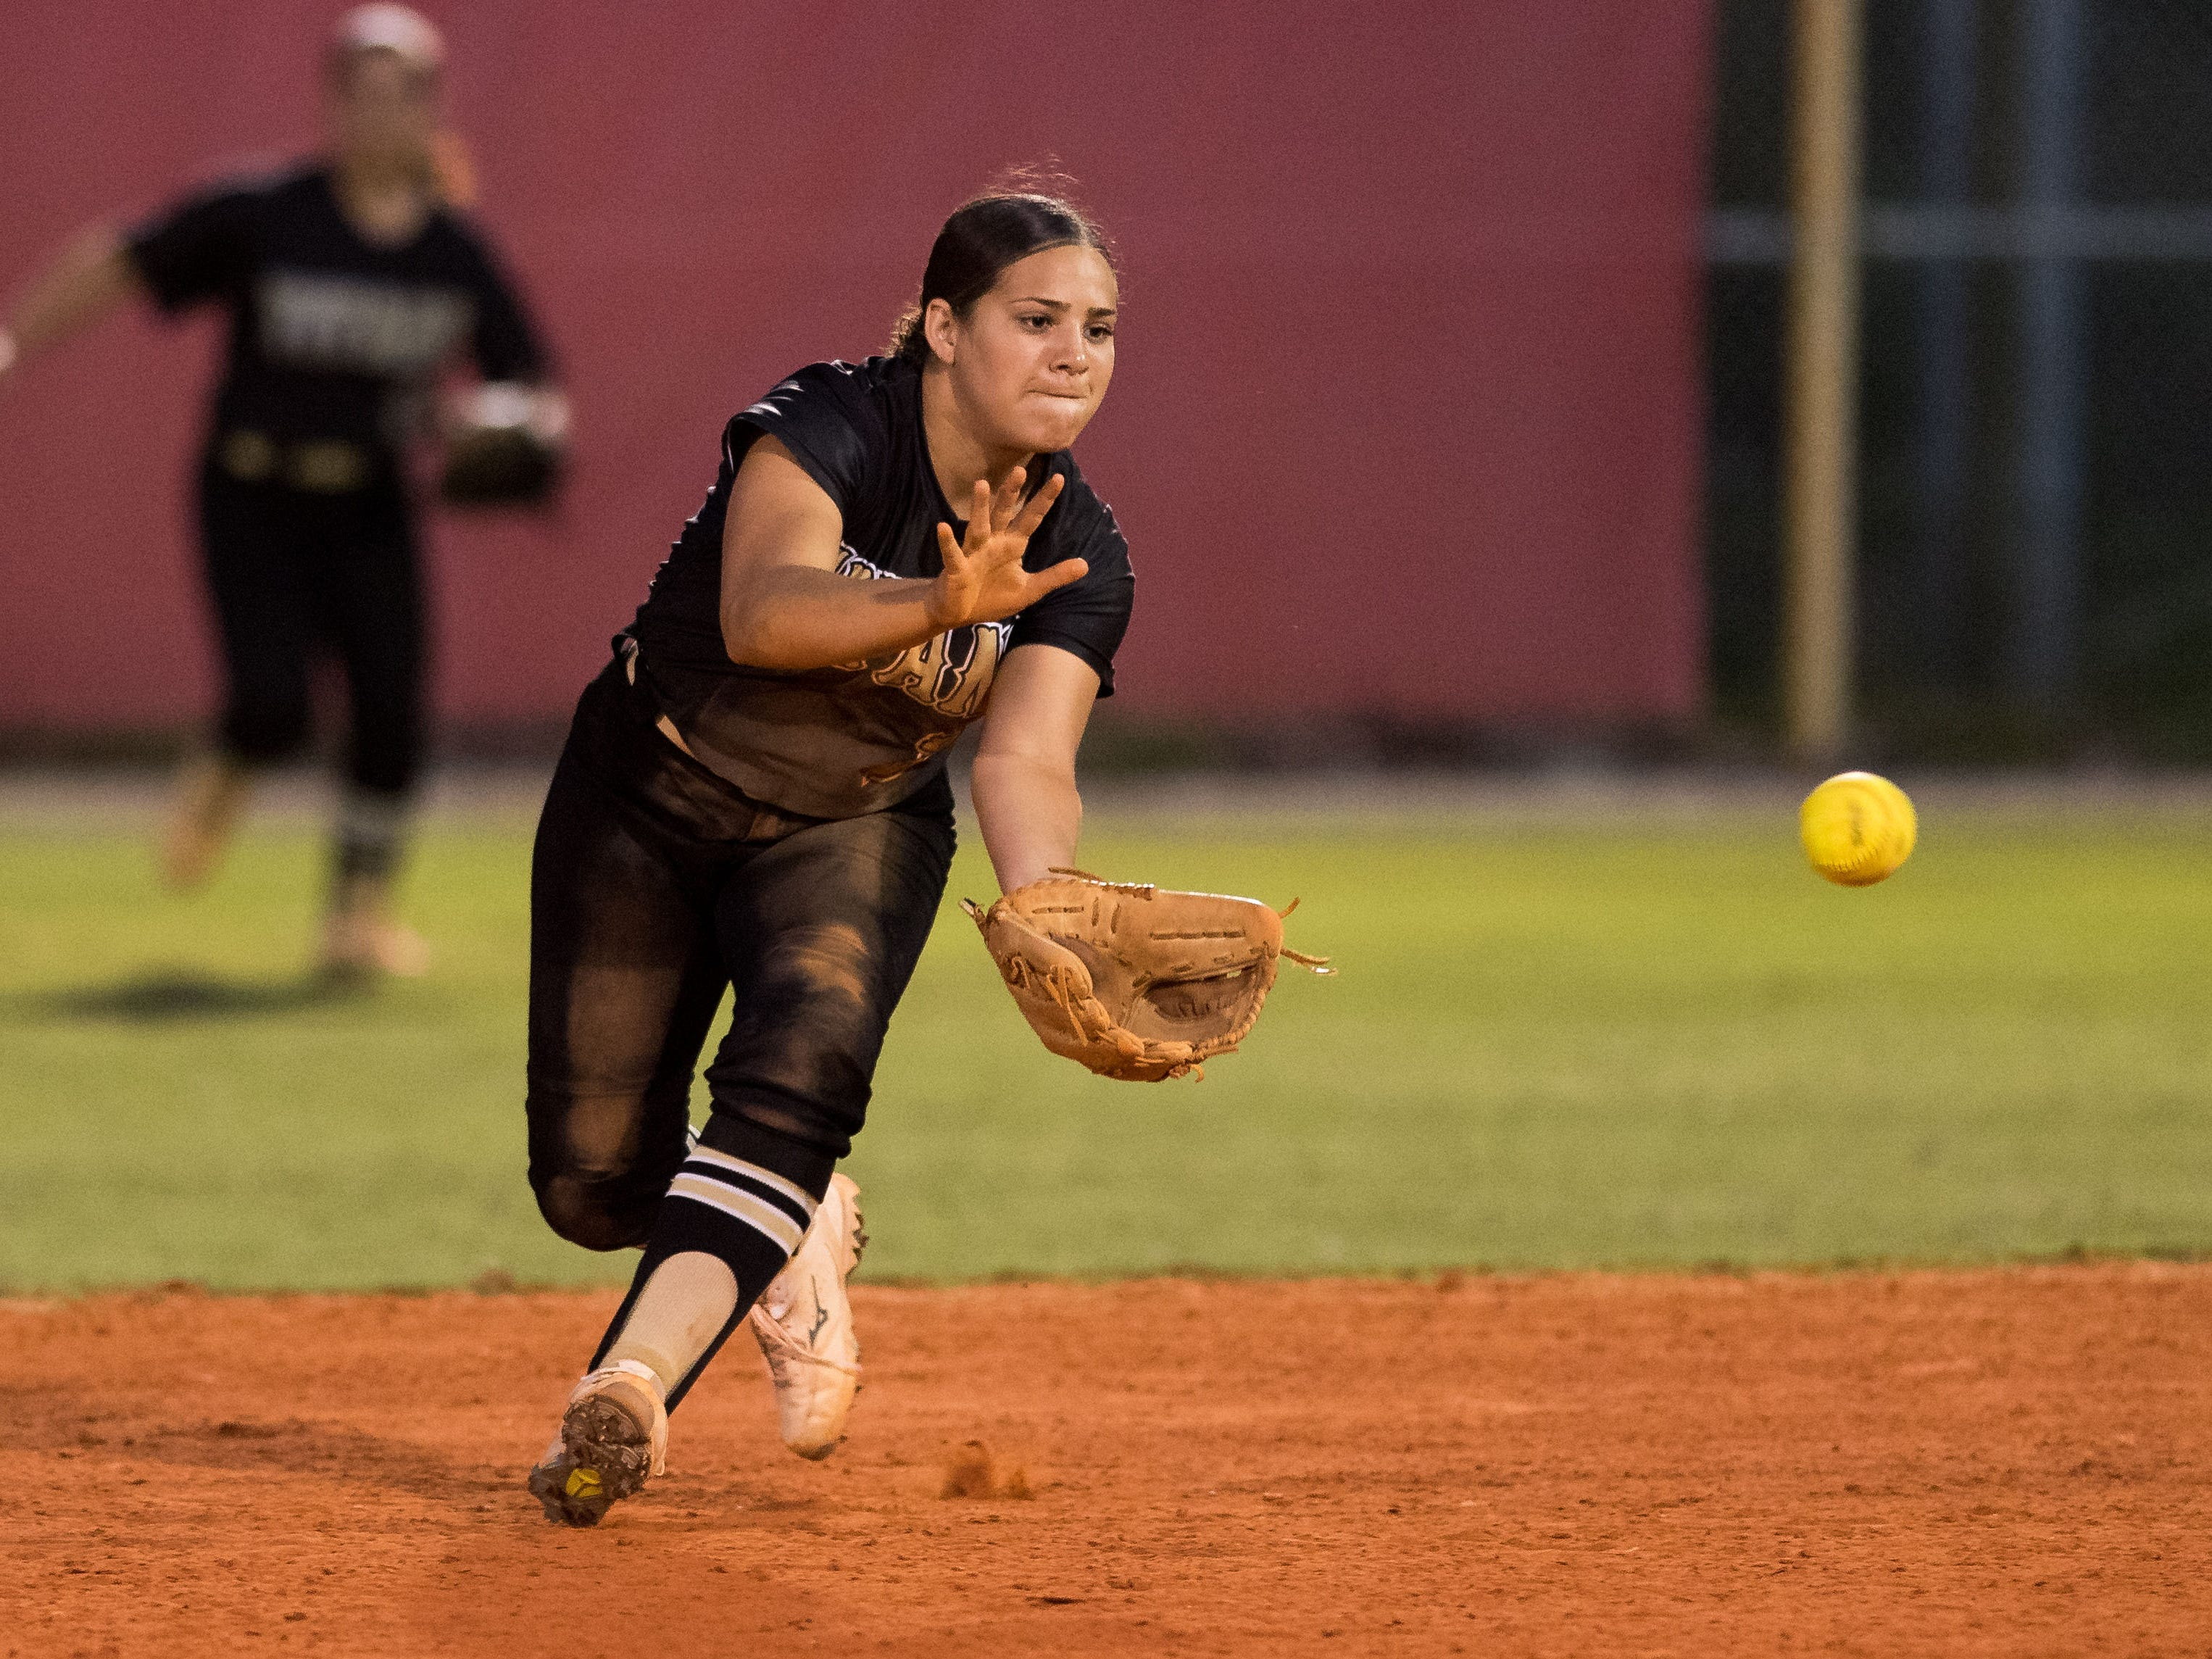 Treasure Coast's Amanda Ruiz fields a grounder by Vero Beach's Summer Washburn for her second fielding out in the fourth inning during the high school softball game Friday, March 29, 2019, at Vero Beach High School.